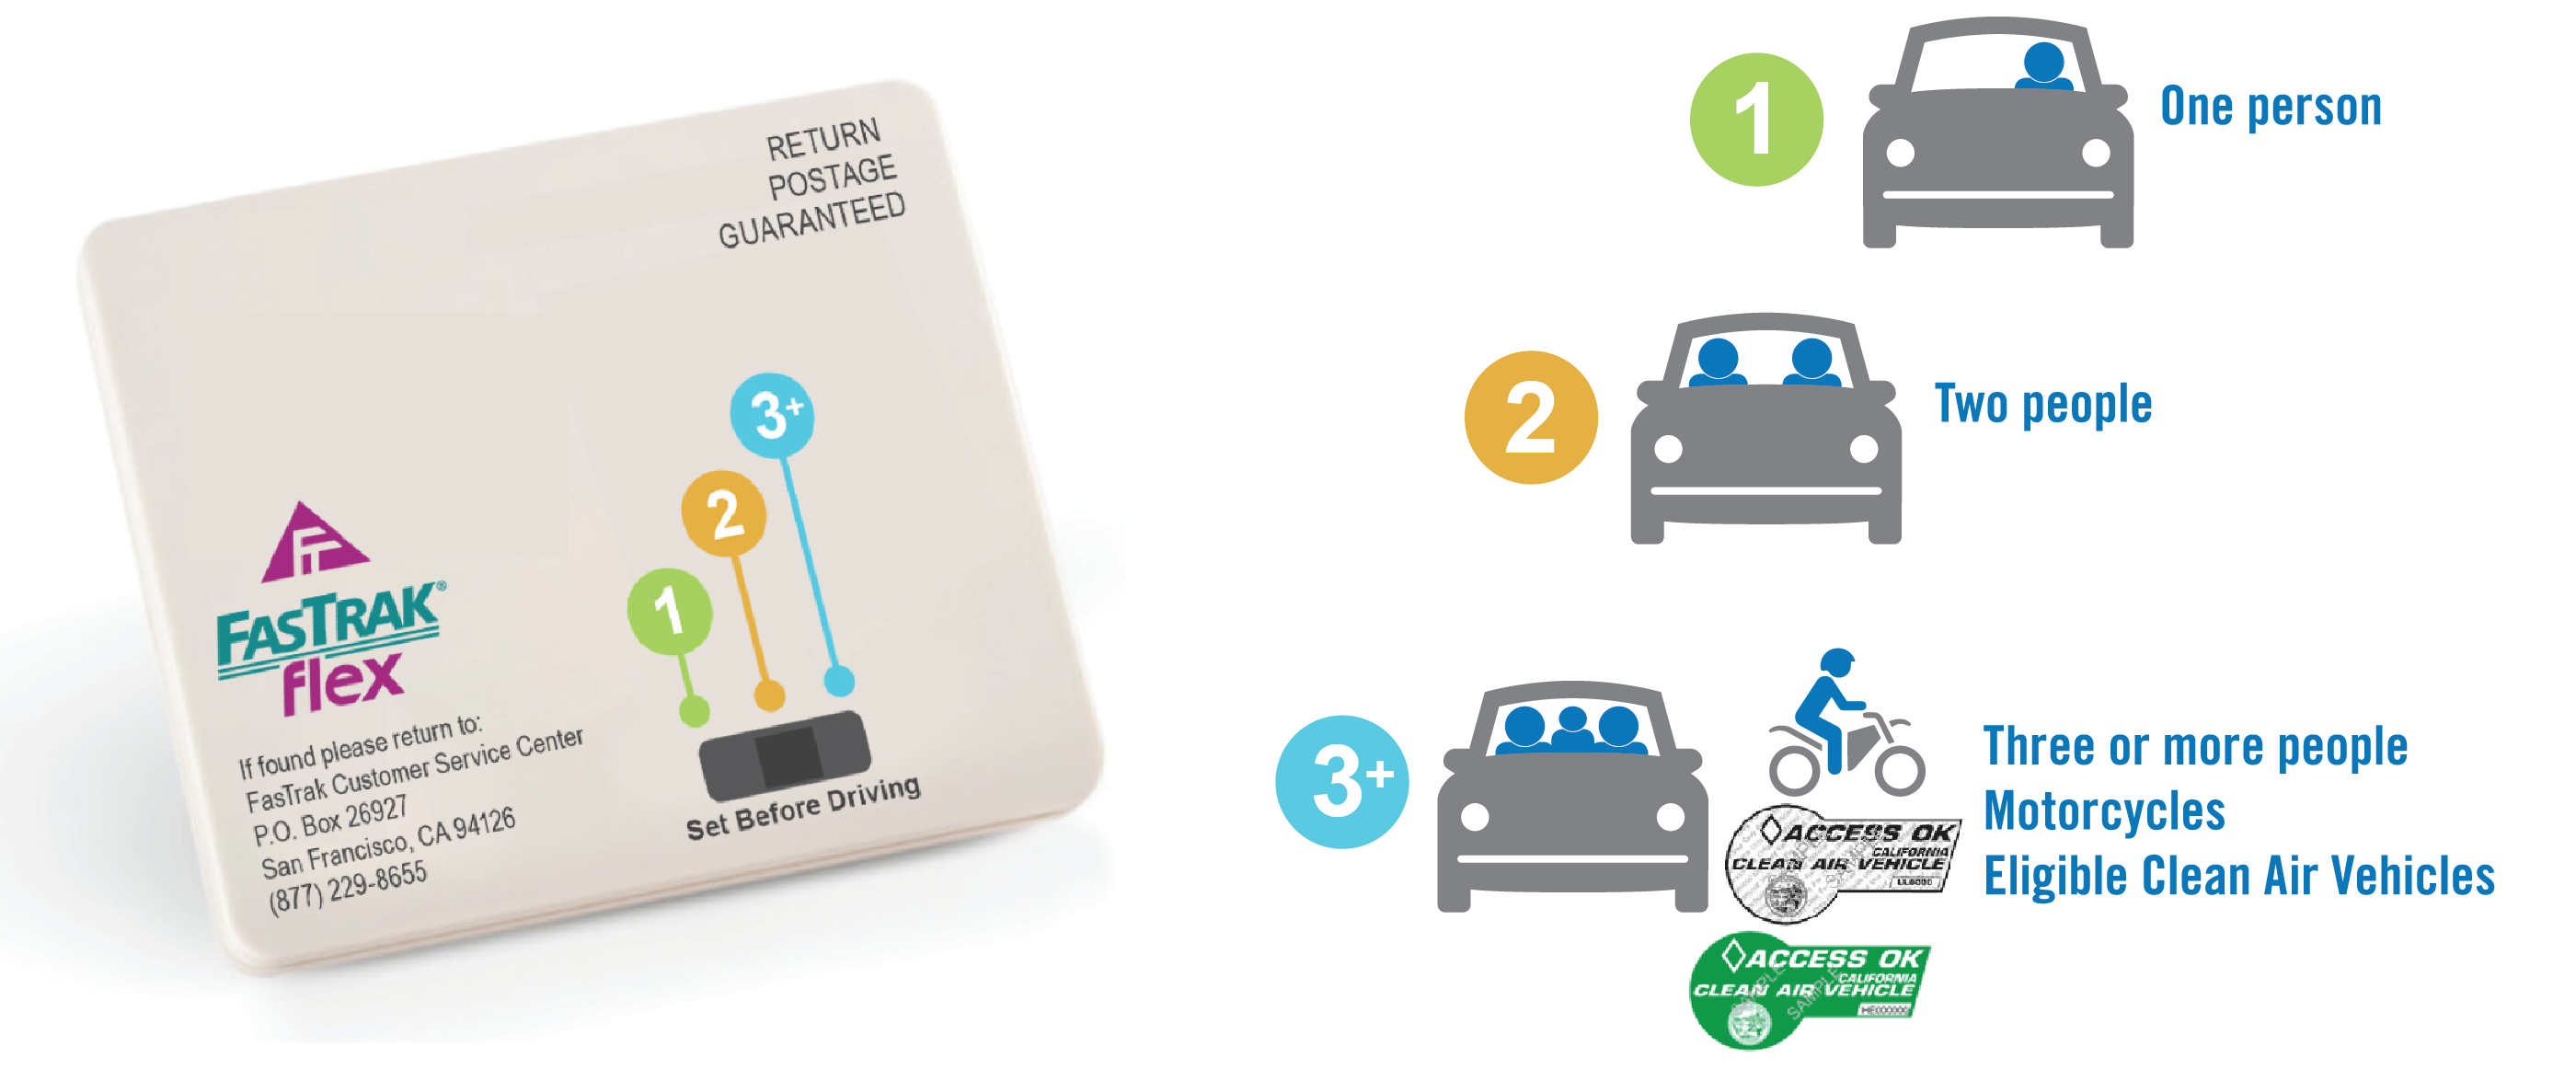 Graphic showing how to use the FasTrak Flex transponder with one, two or three or more people